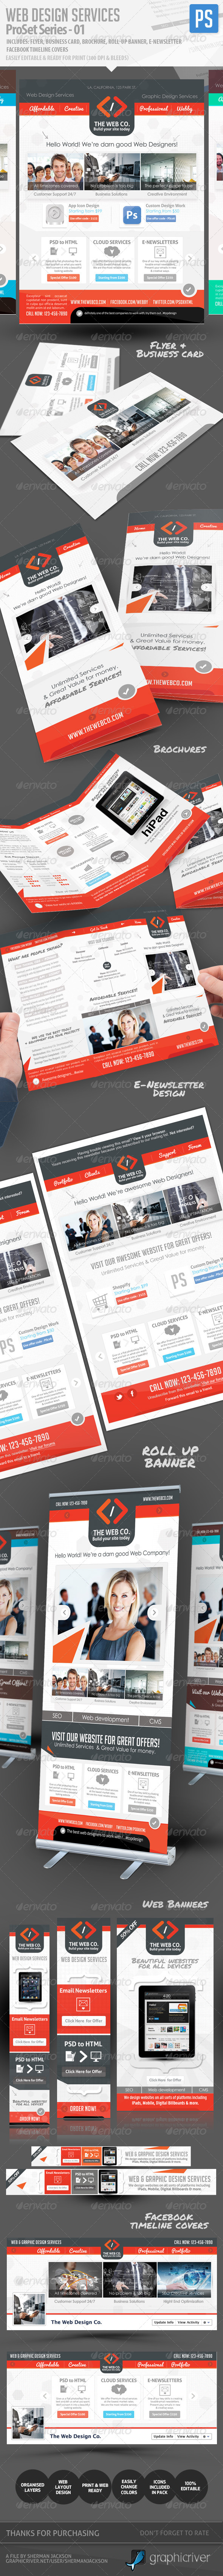 Web Design Service Pro Set - All in One Bundle - Stationery Print Templates